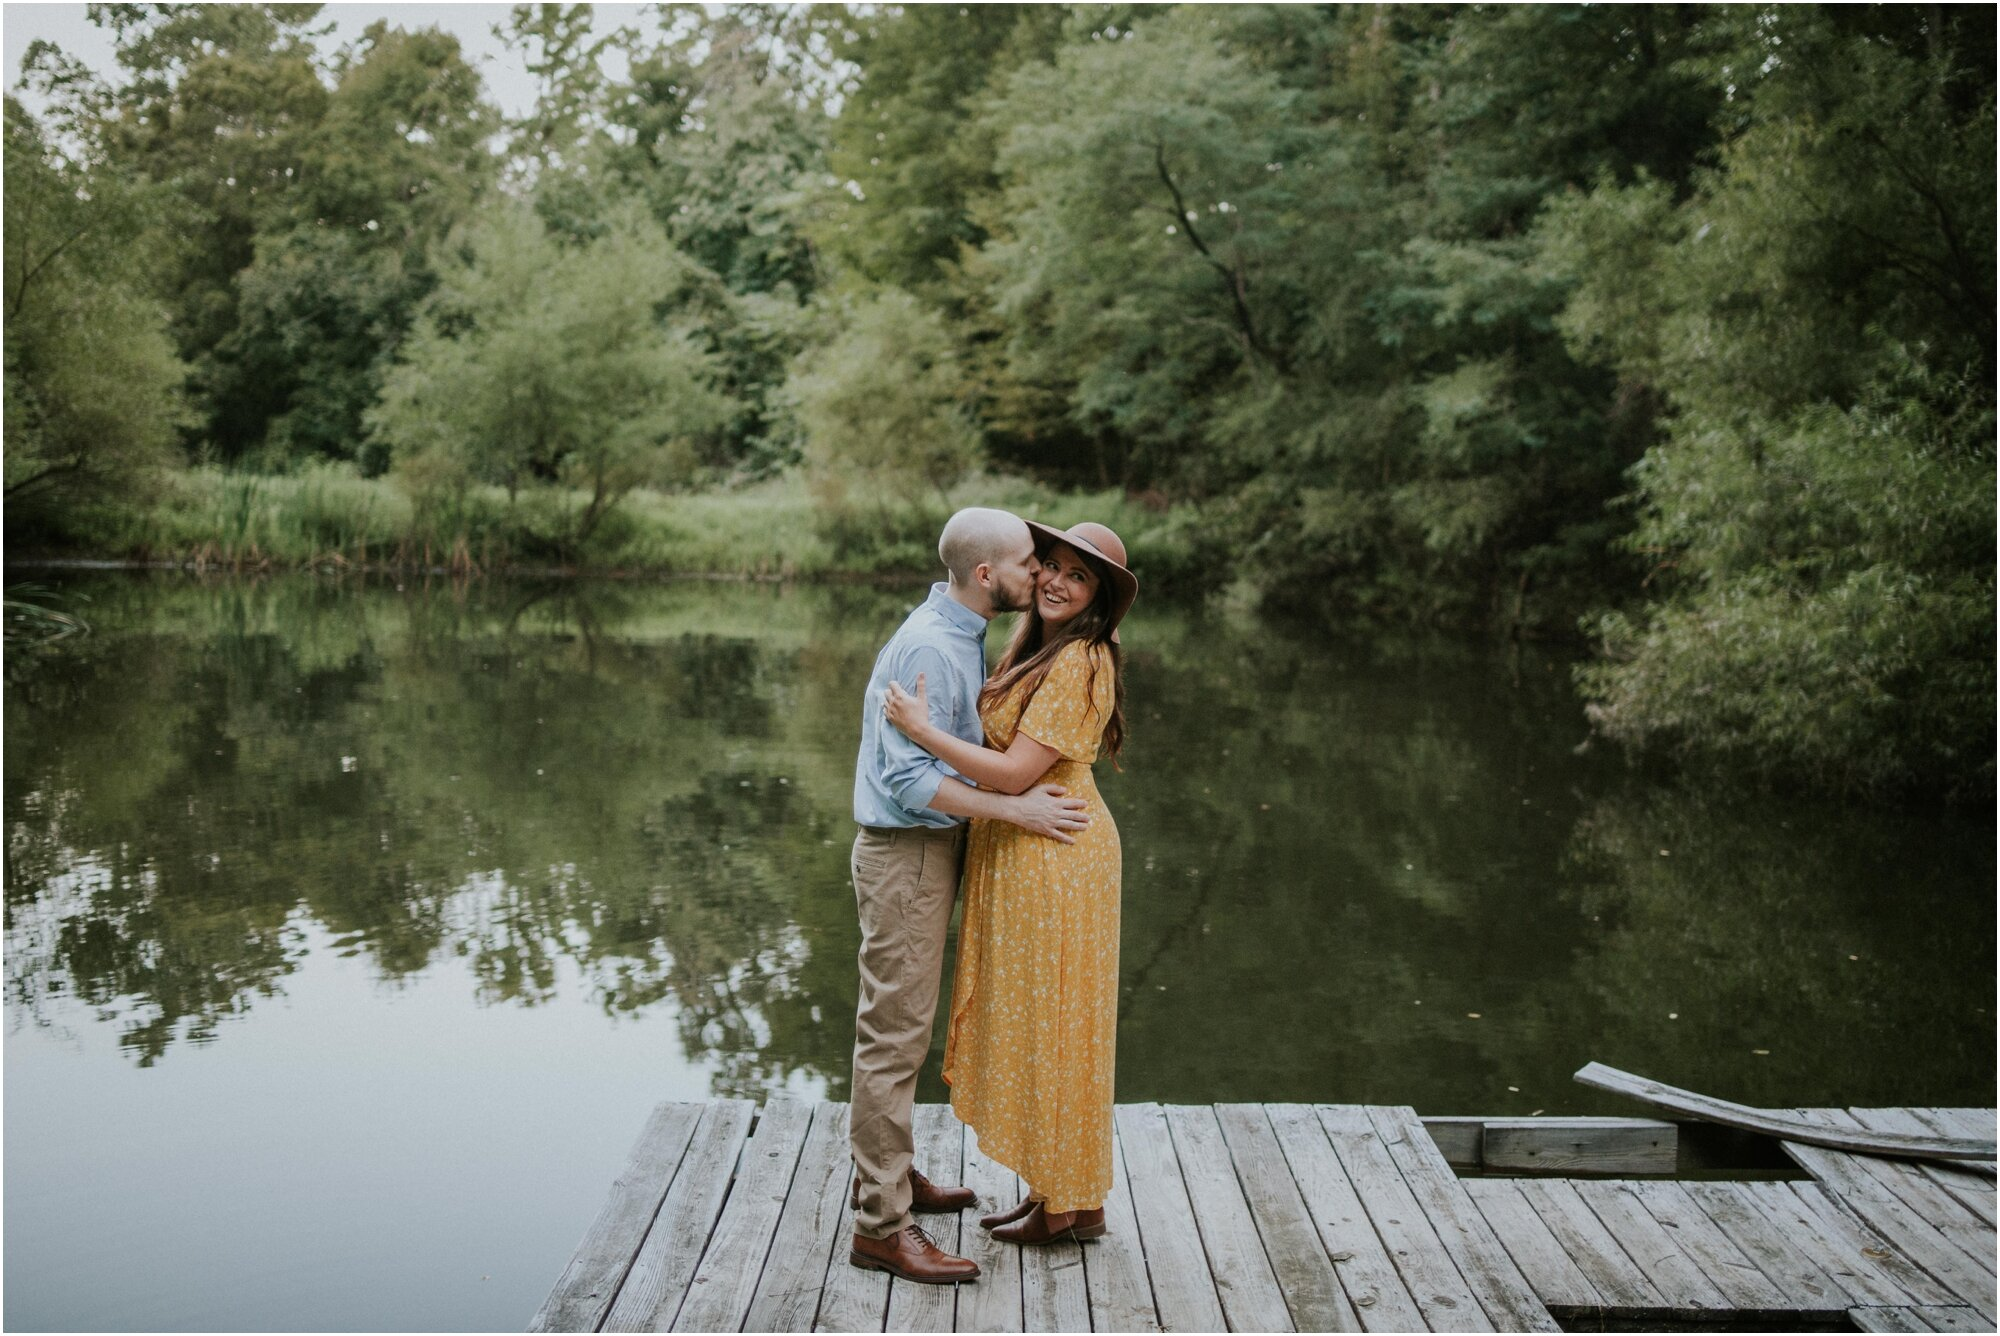 kingsport-tennessee-backyard-pond-bays-mountain-summer-engagement-session_0038.jpg